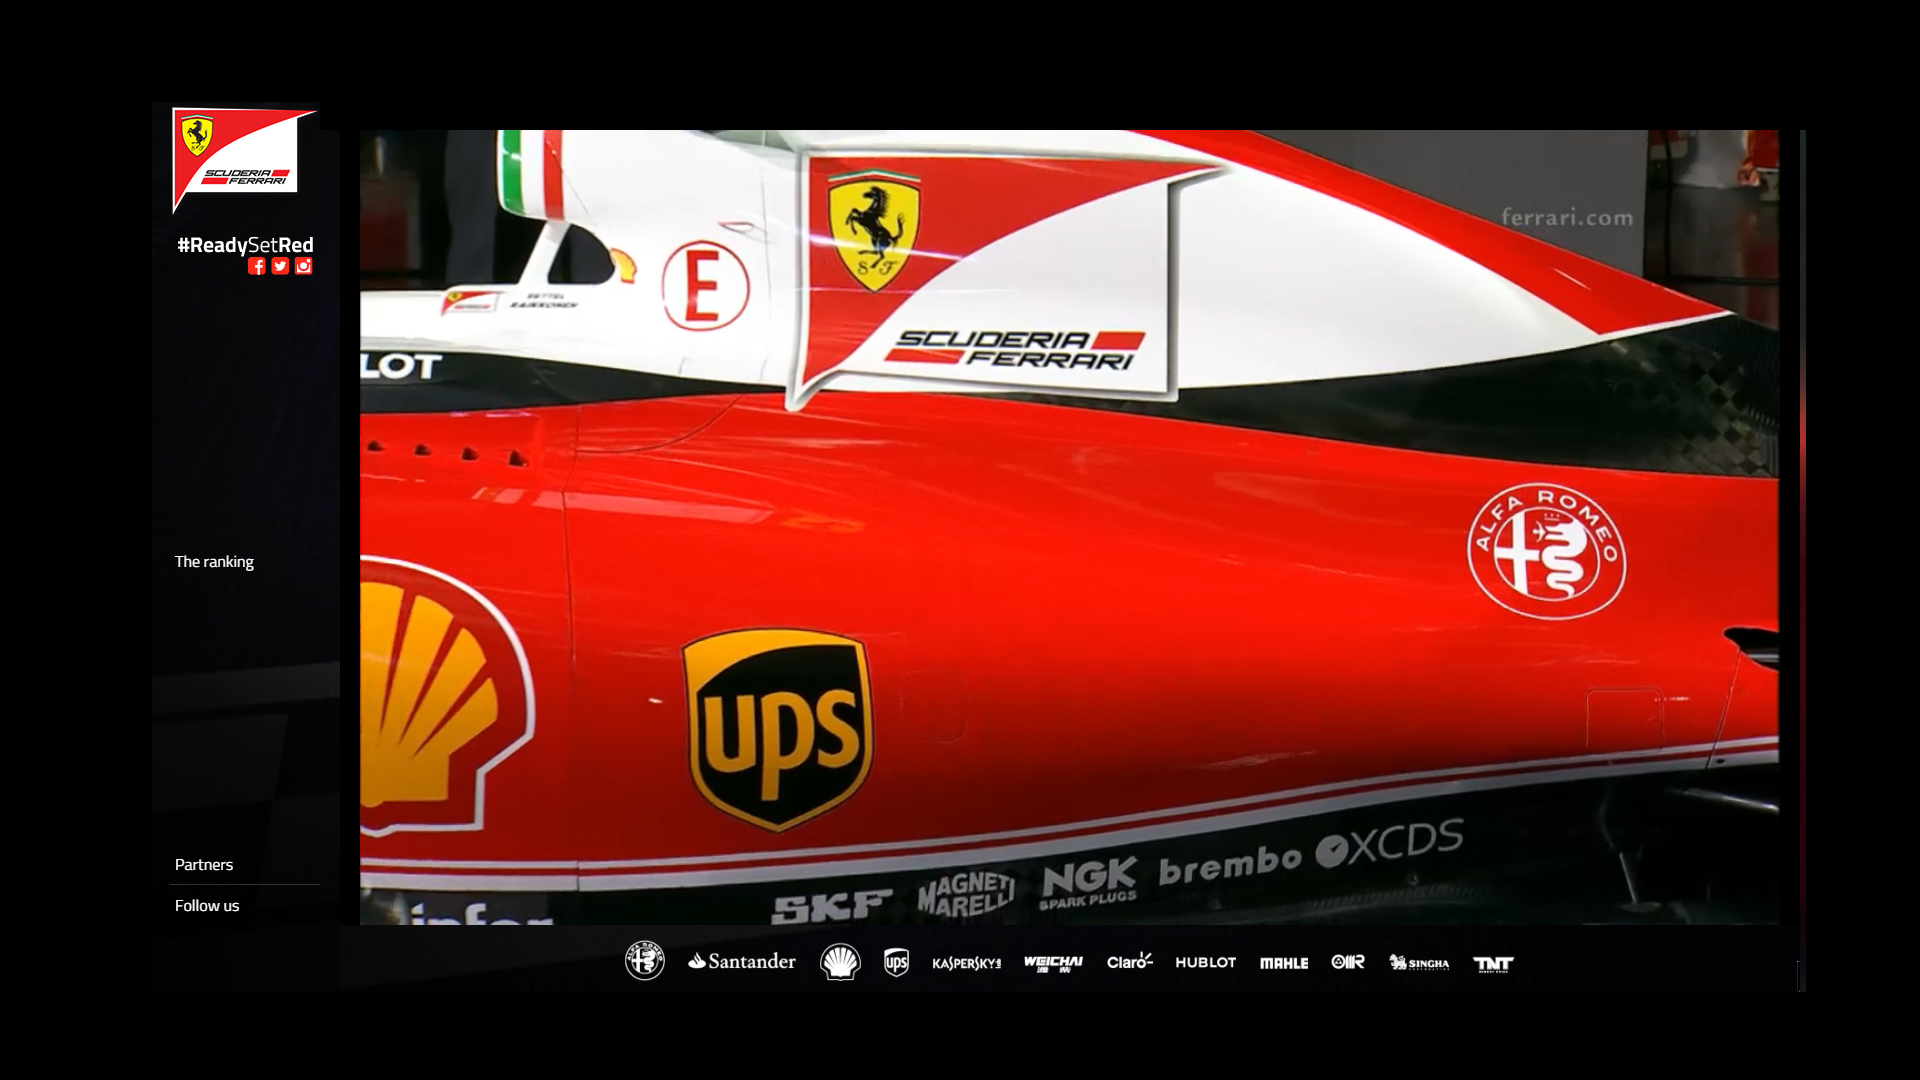 SF16-H - top engine via livestream Scuderia Ferrari ReadySetRed SF16-H F1 2016